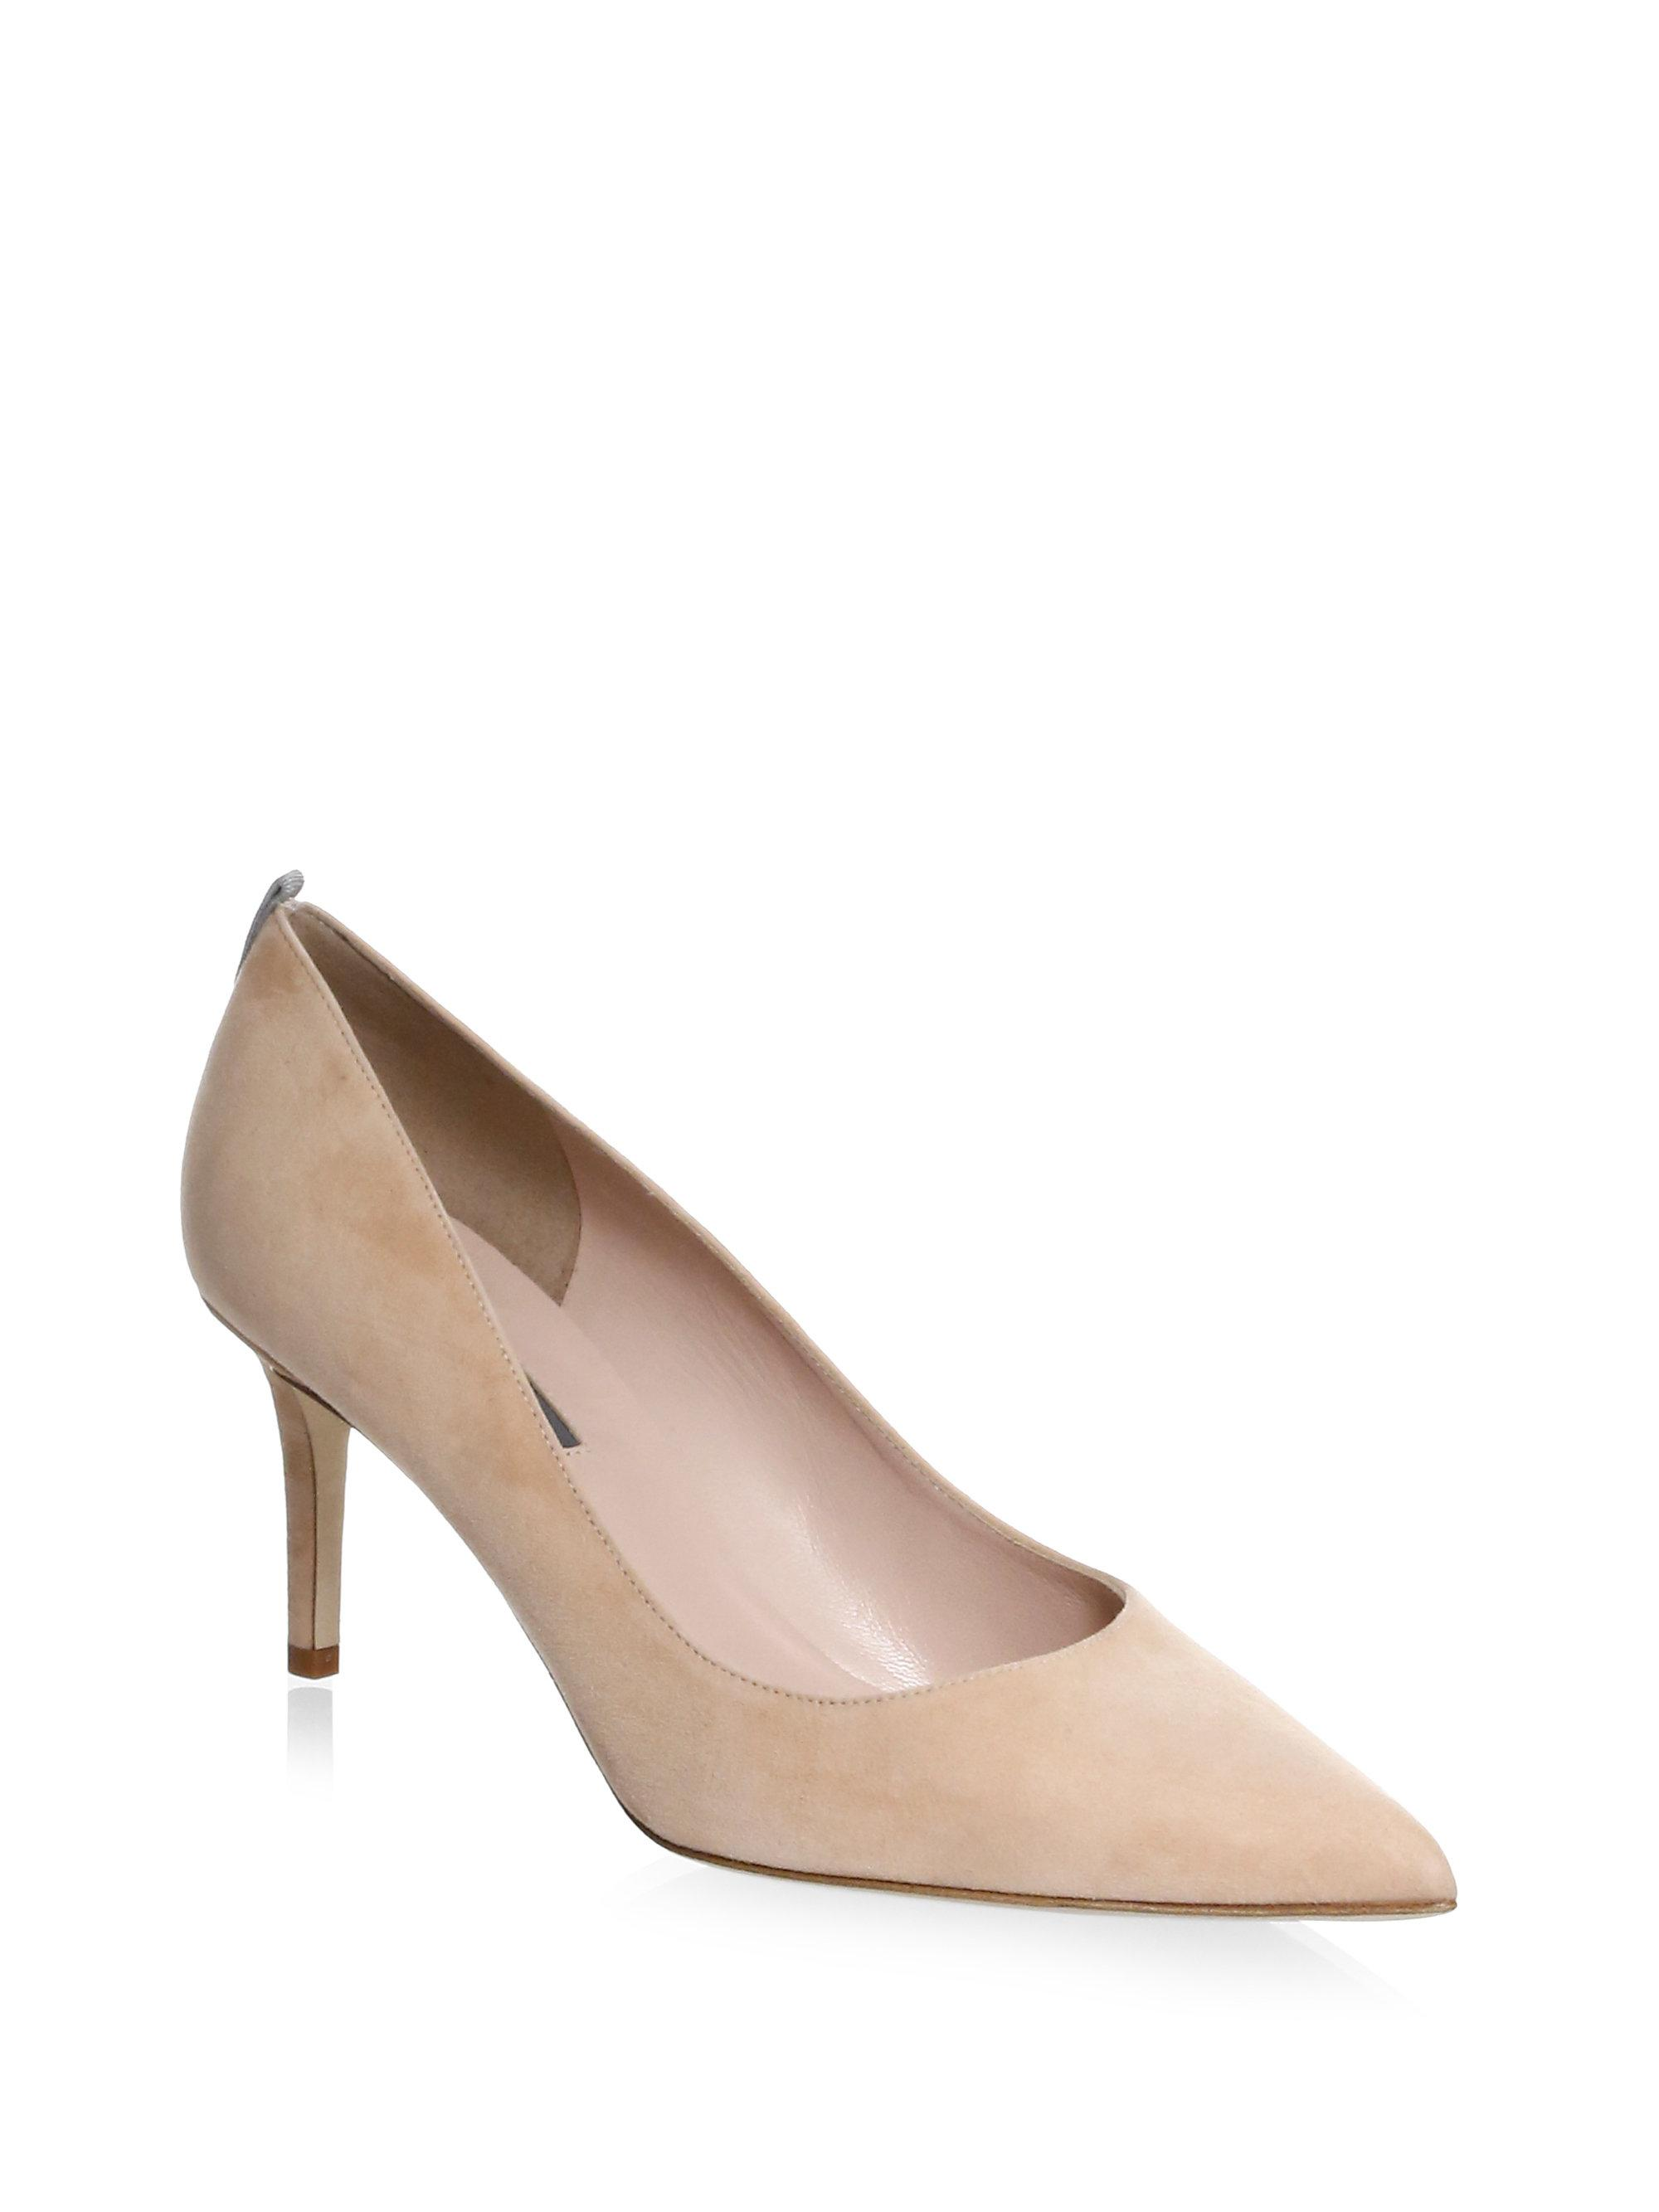 SJP by Sarah Jessica Parker. Women's Natural Fawn Point Toe Suede Pumps